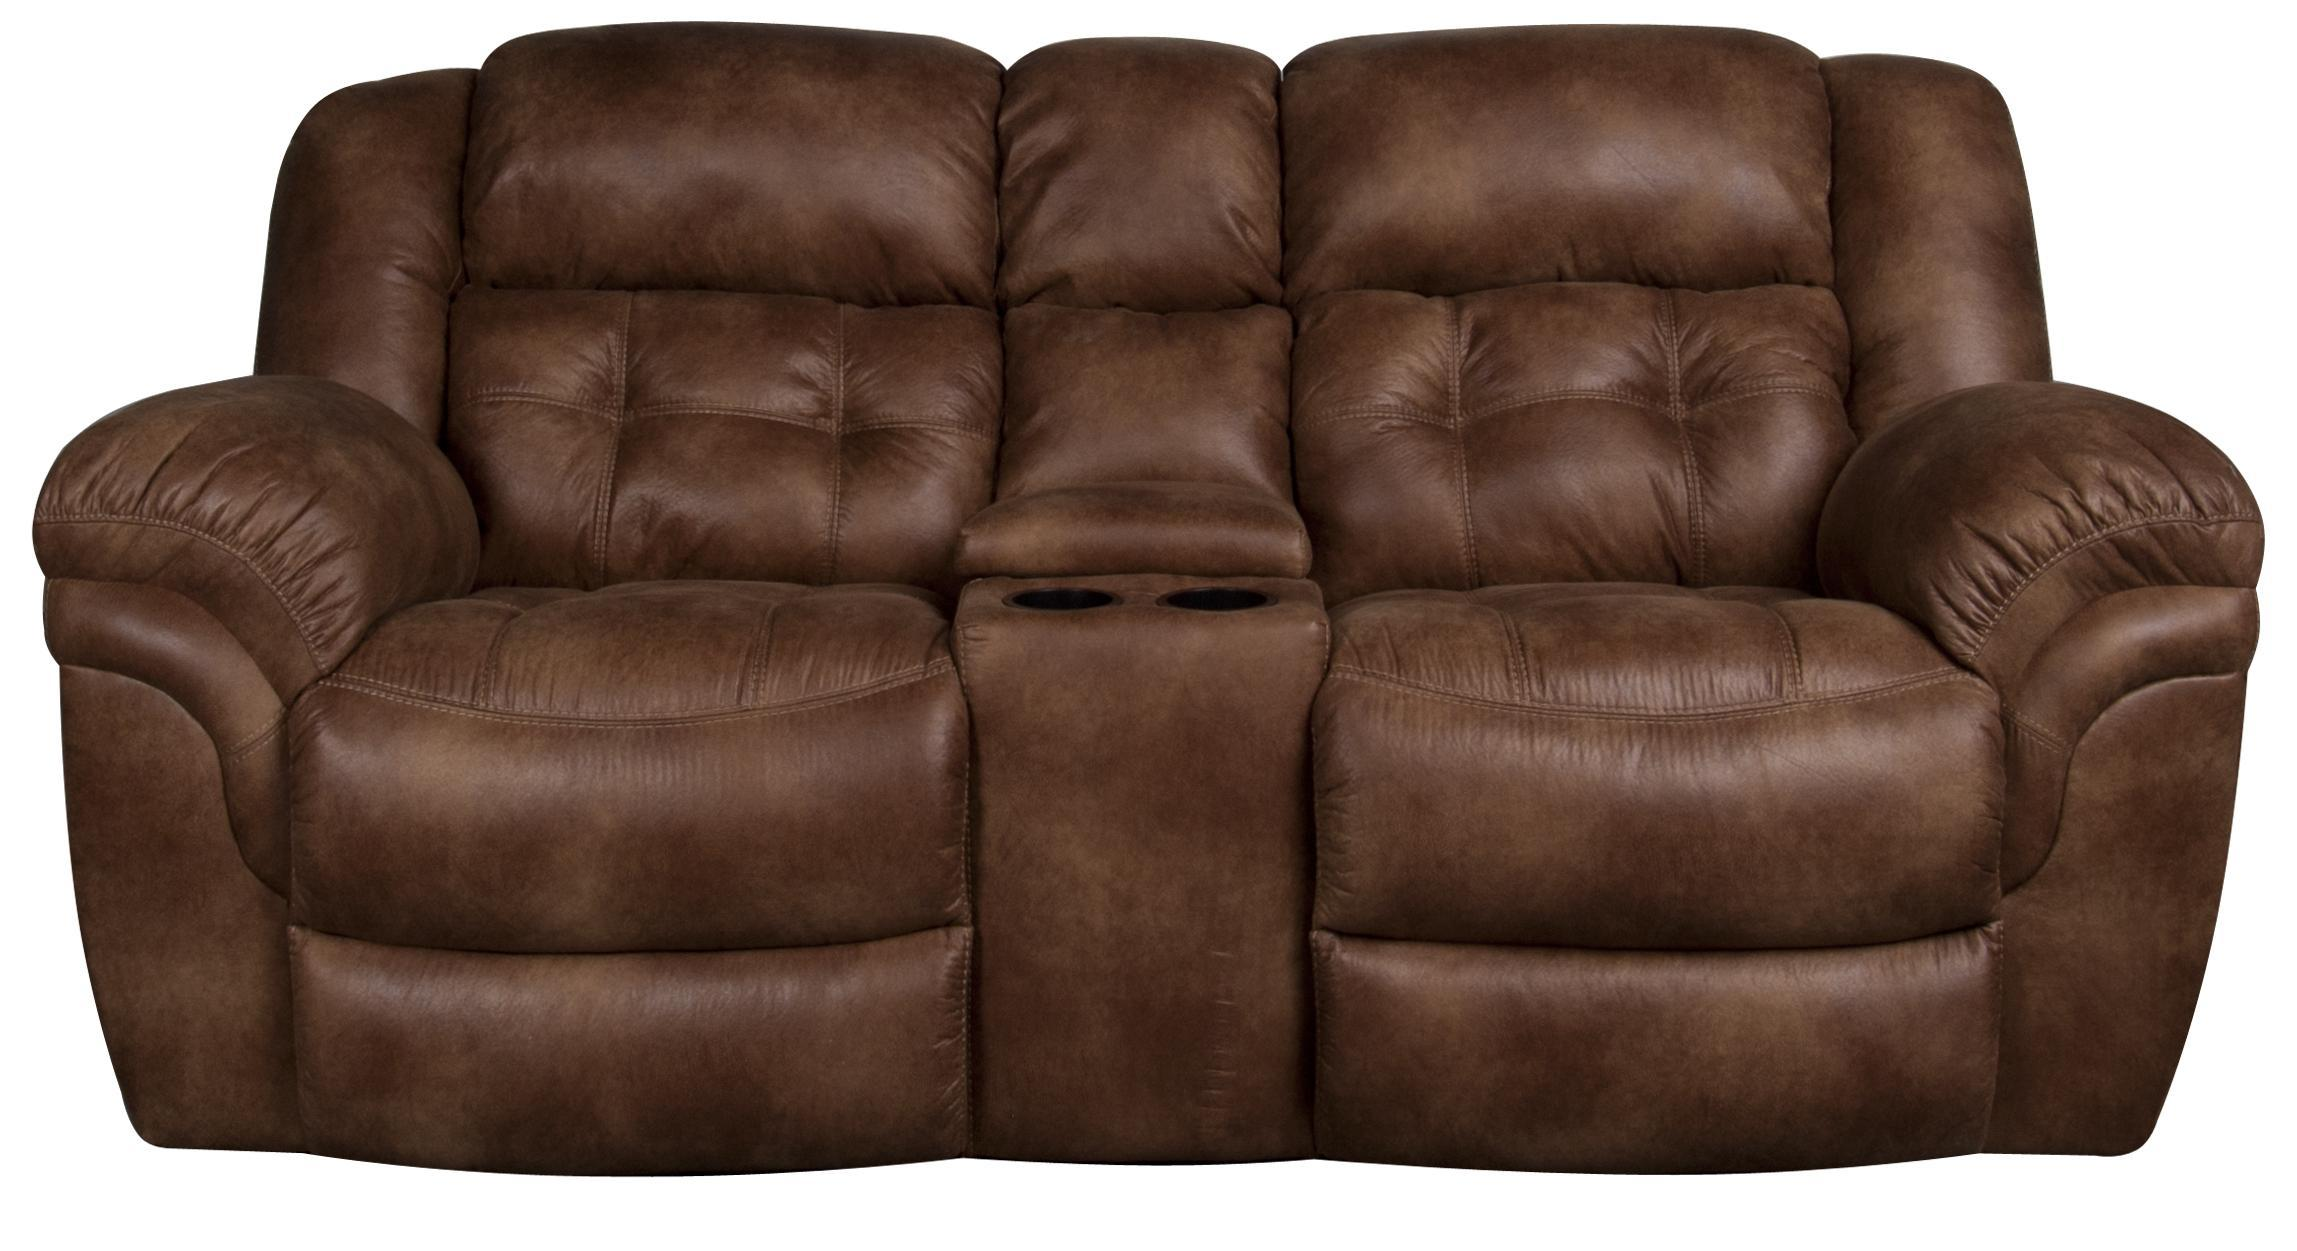 Morris Home Furnishings Elijah Elijah Reclining Loveseat with Console - Item Number 105855071  sc 1 st  Morris Furniture & Elijah Reclining Loveseat with Console - Morris Home - Reclining ... islam-shia.org